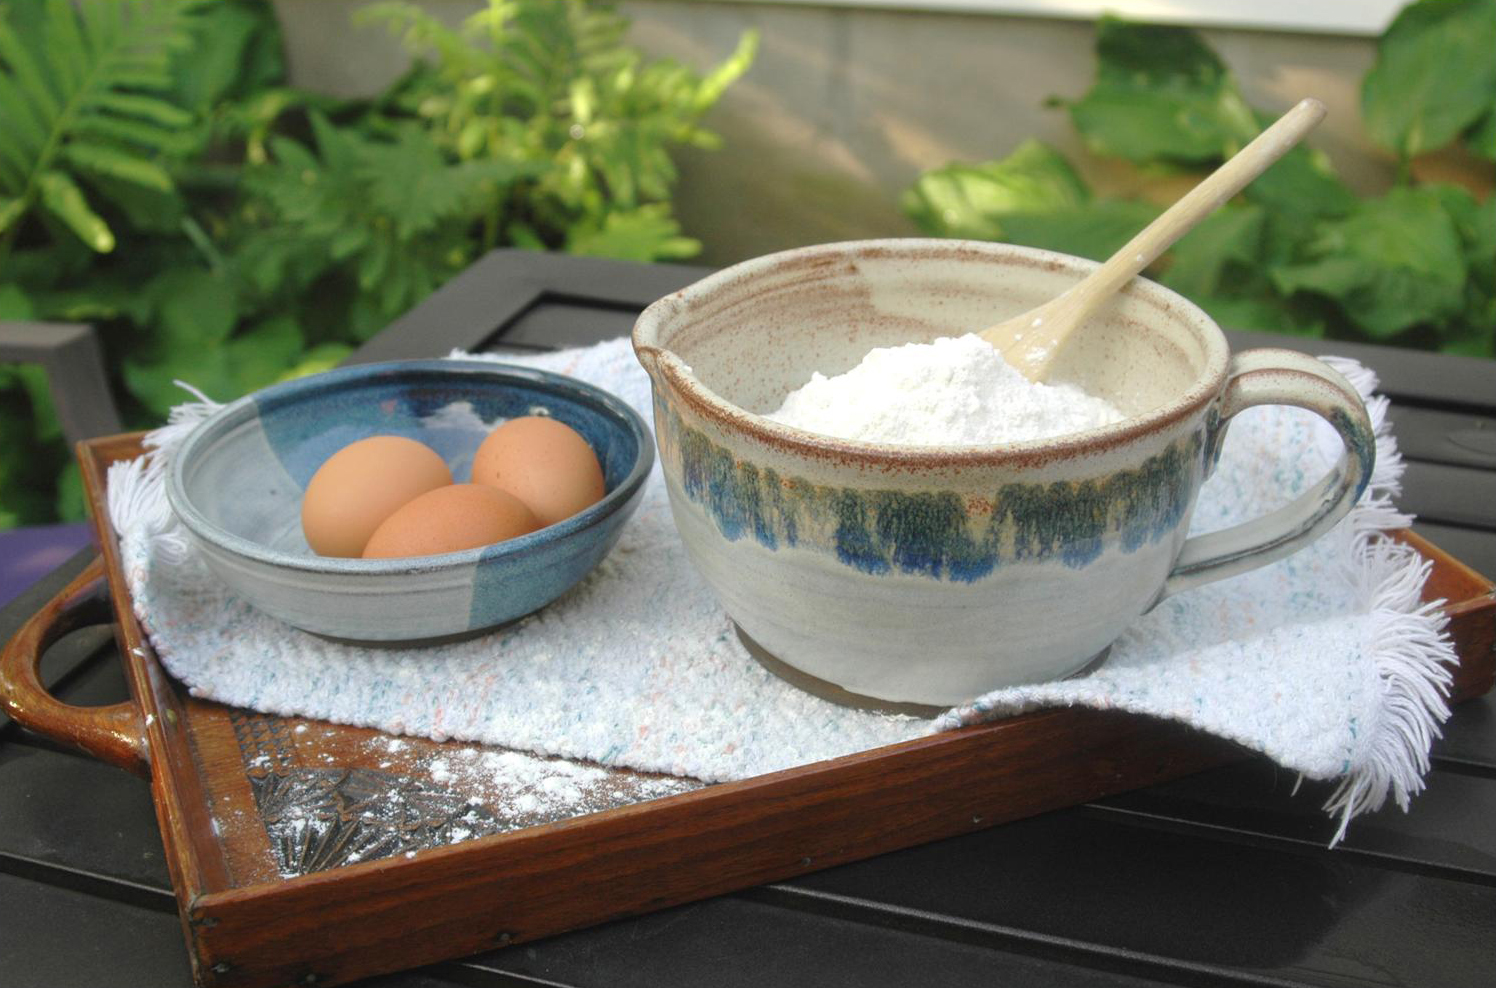 nw-eggs-and-batter-bowl